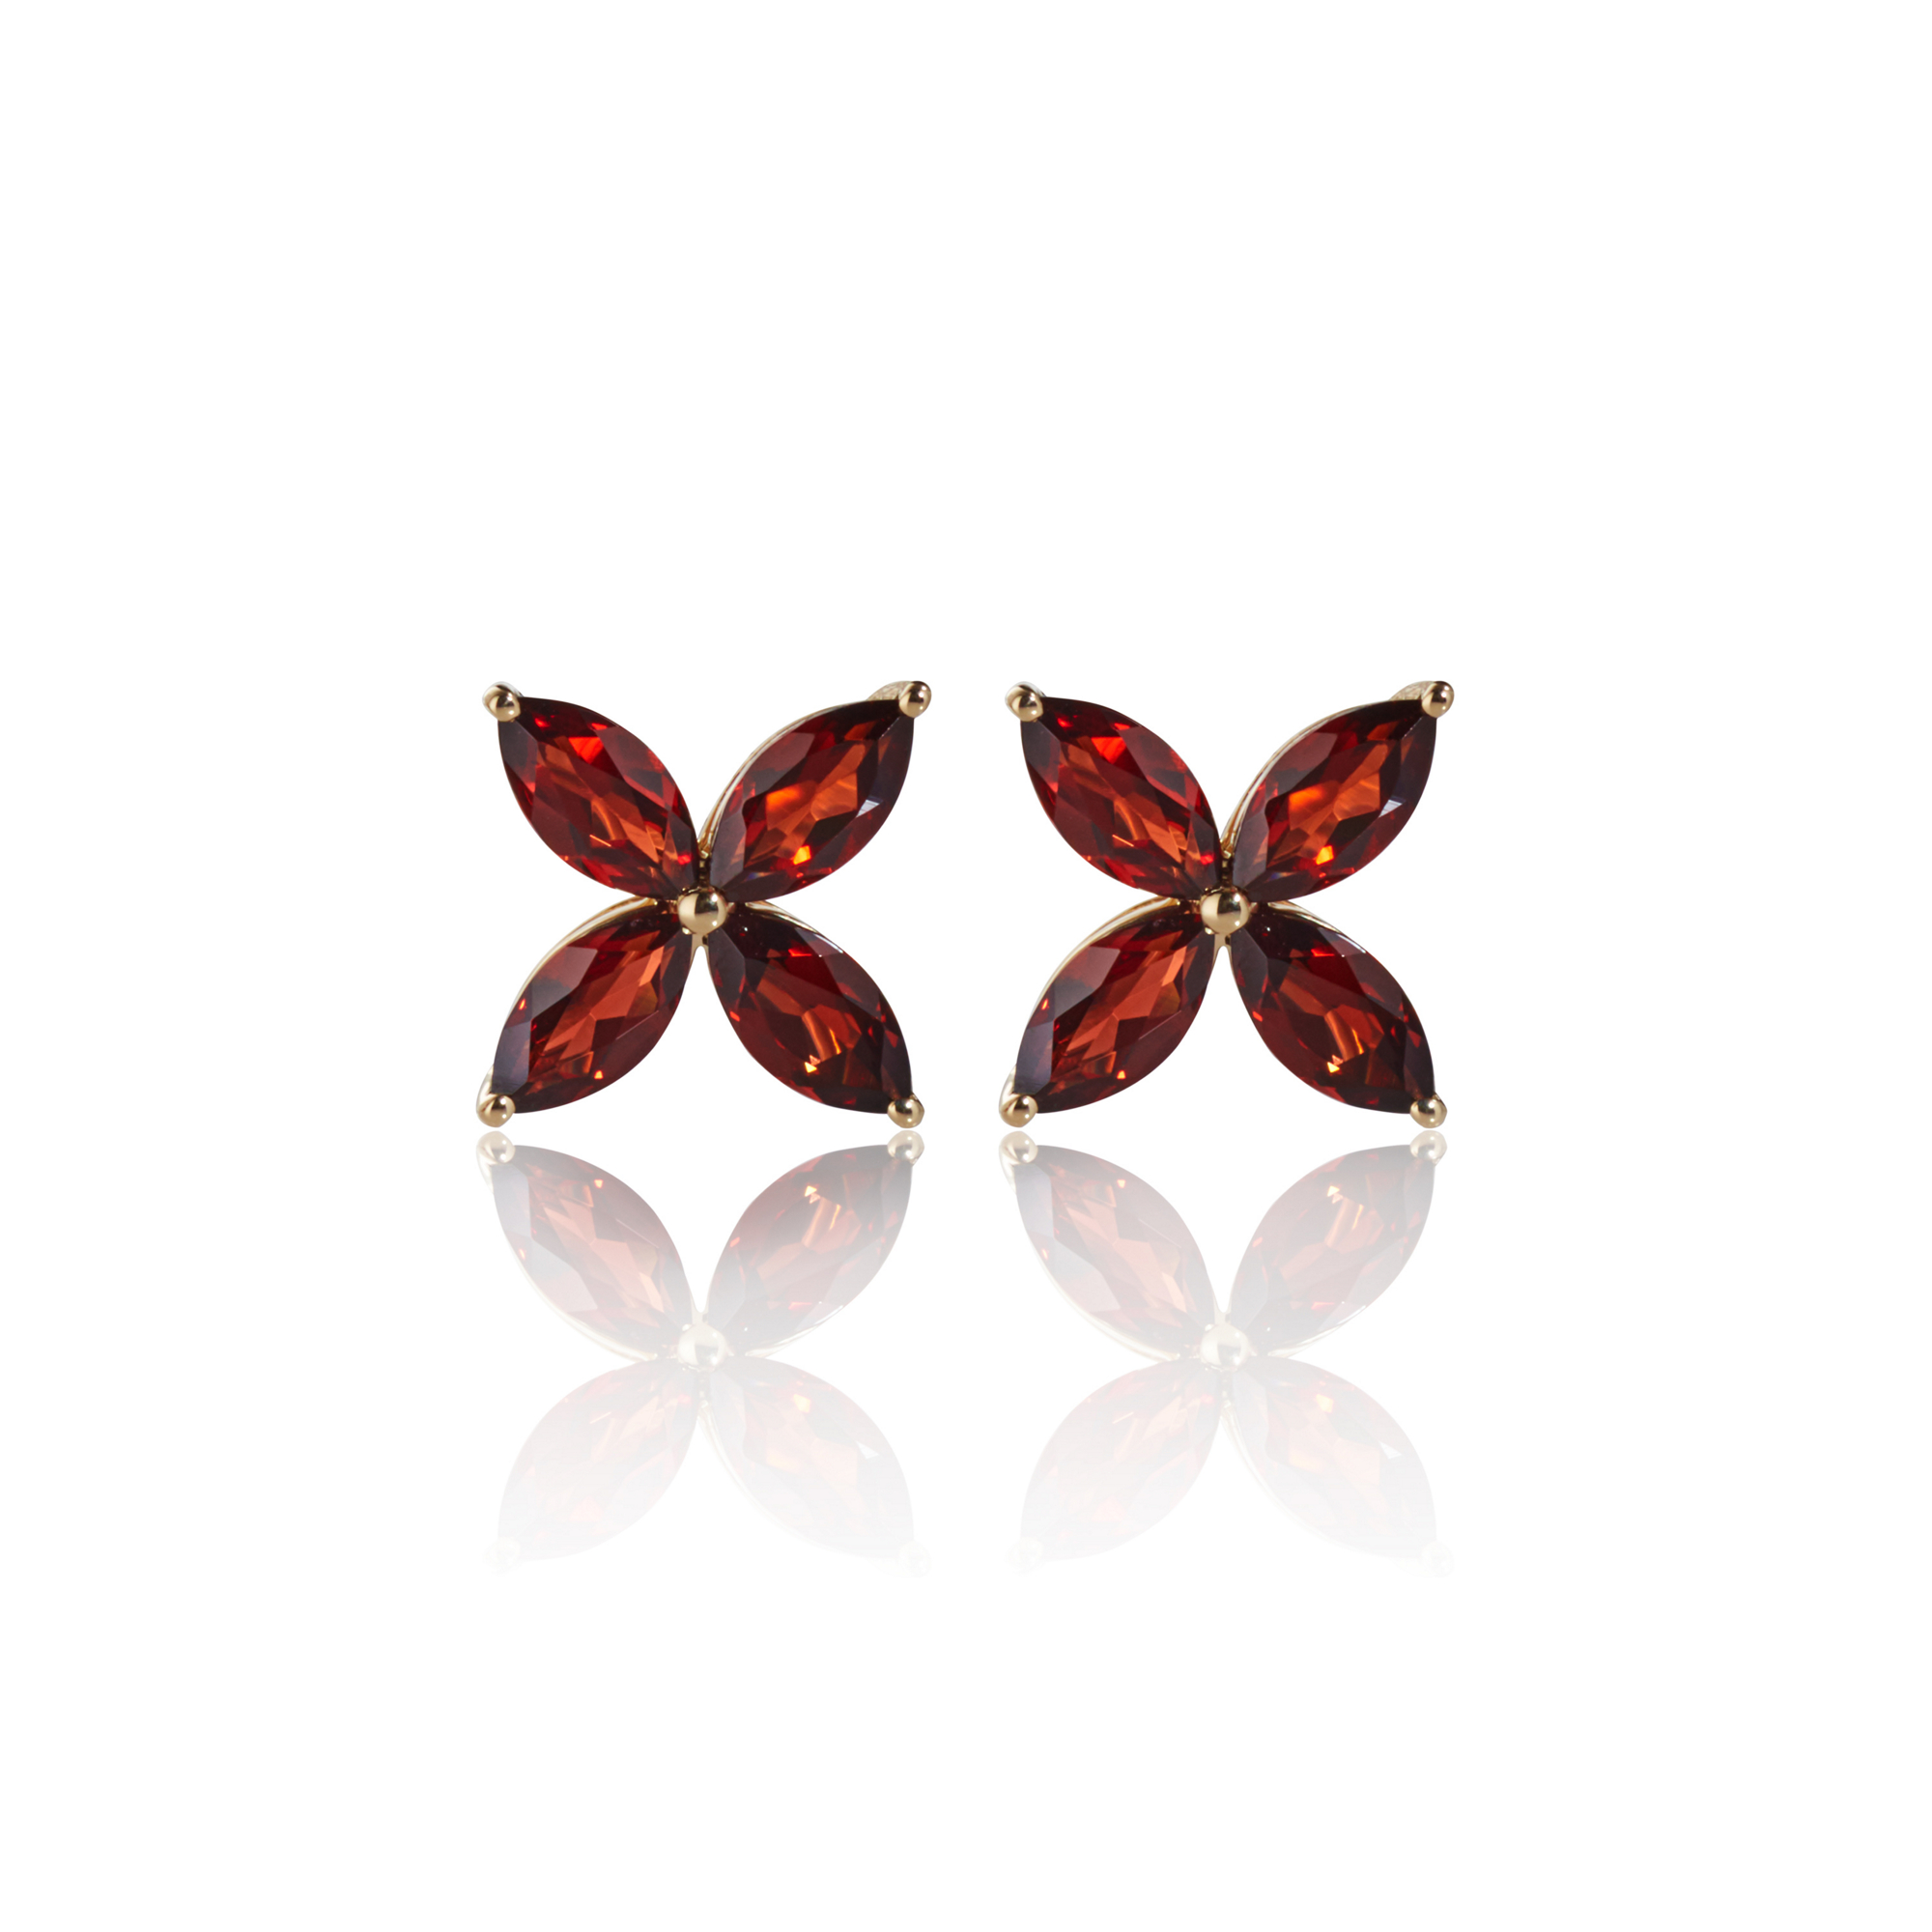 Gump's Mozambique Garnet Flower Stud Earrings